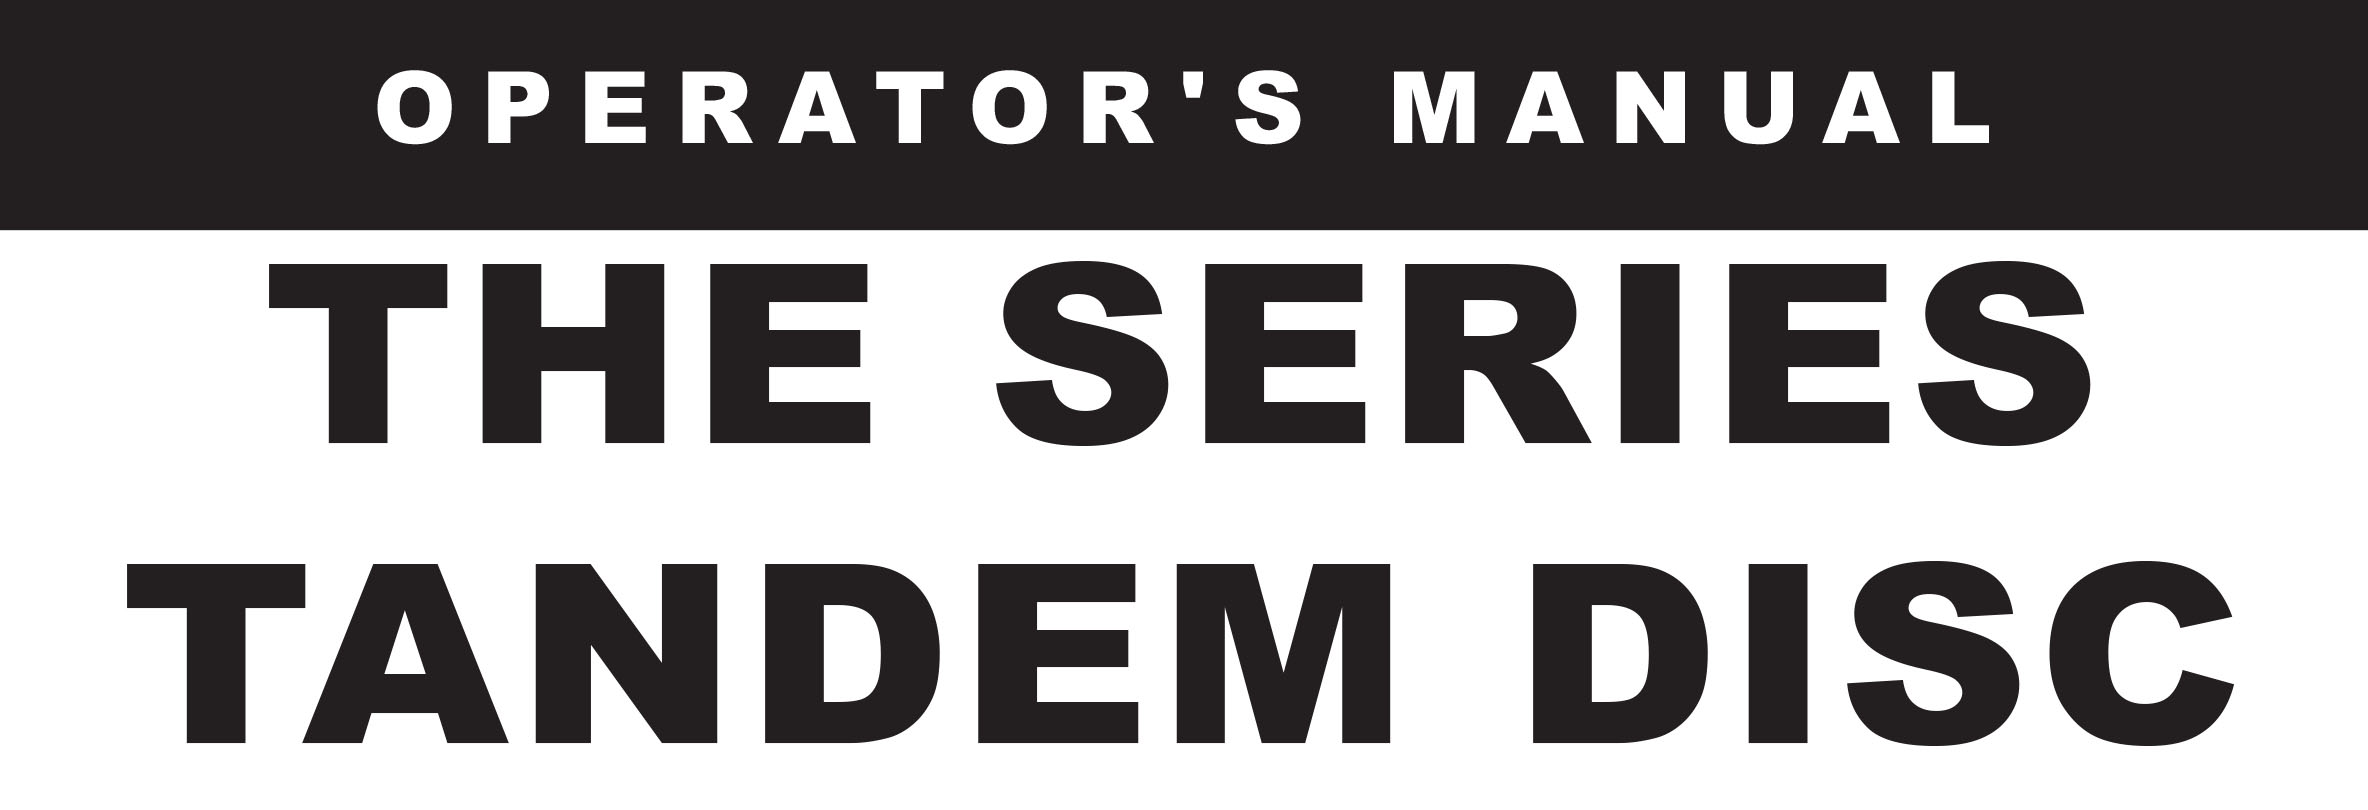 THE Series Owners Manual